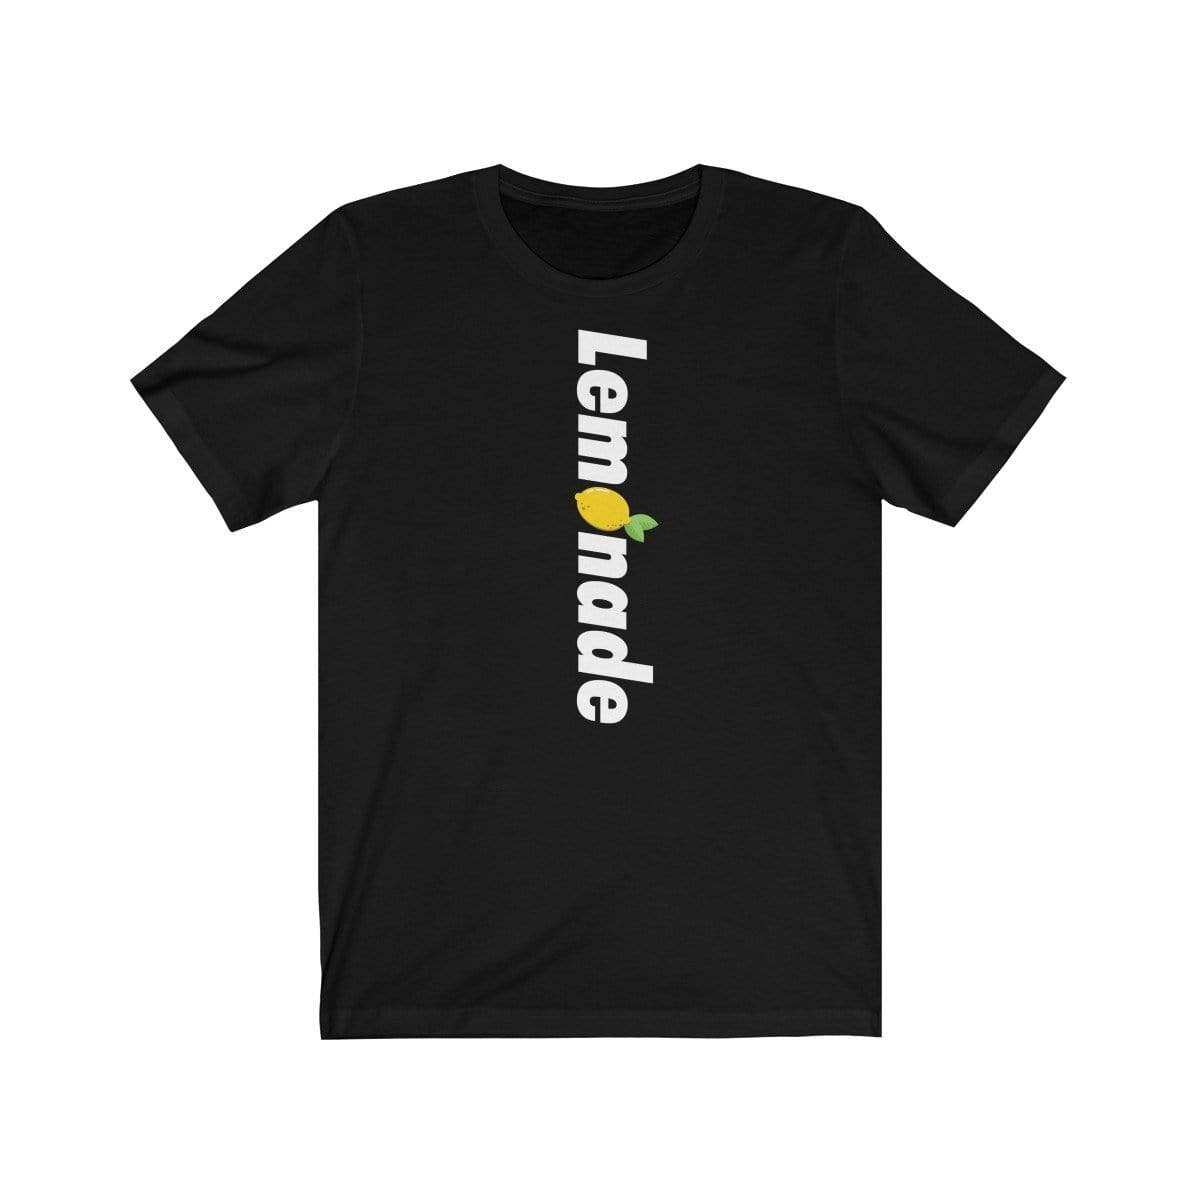 Lemonade Spine Tee - Ice Cold Lmnd Lemonade Spine Tee